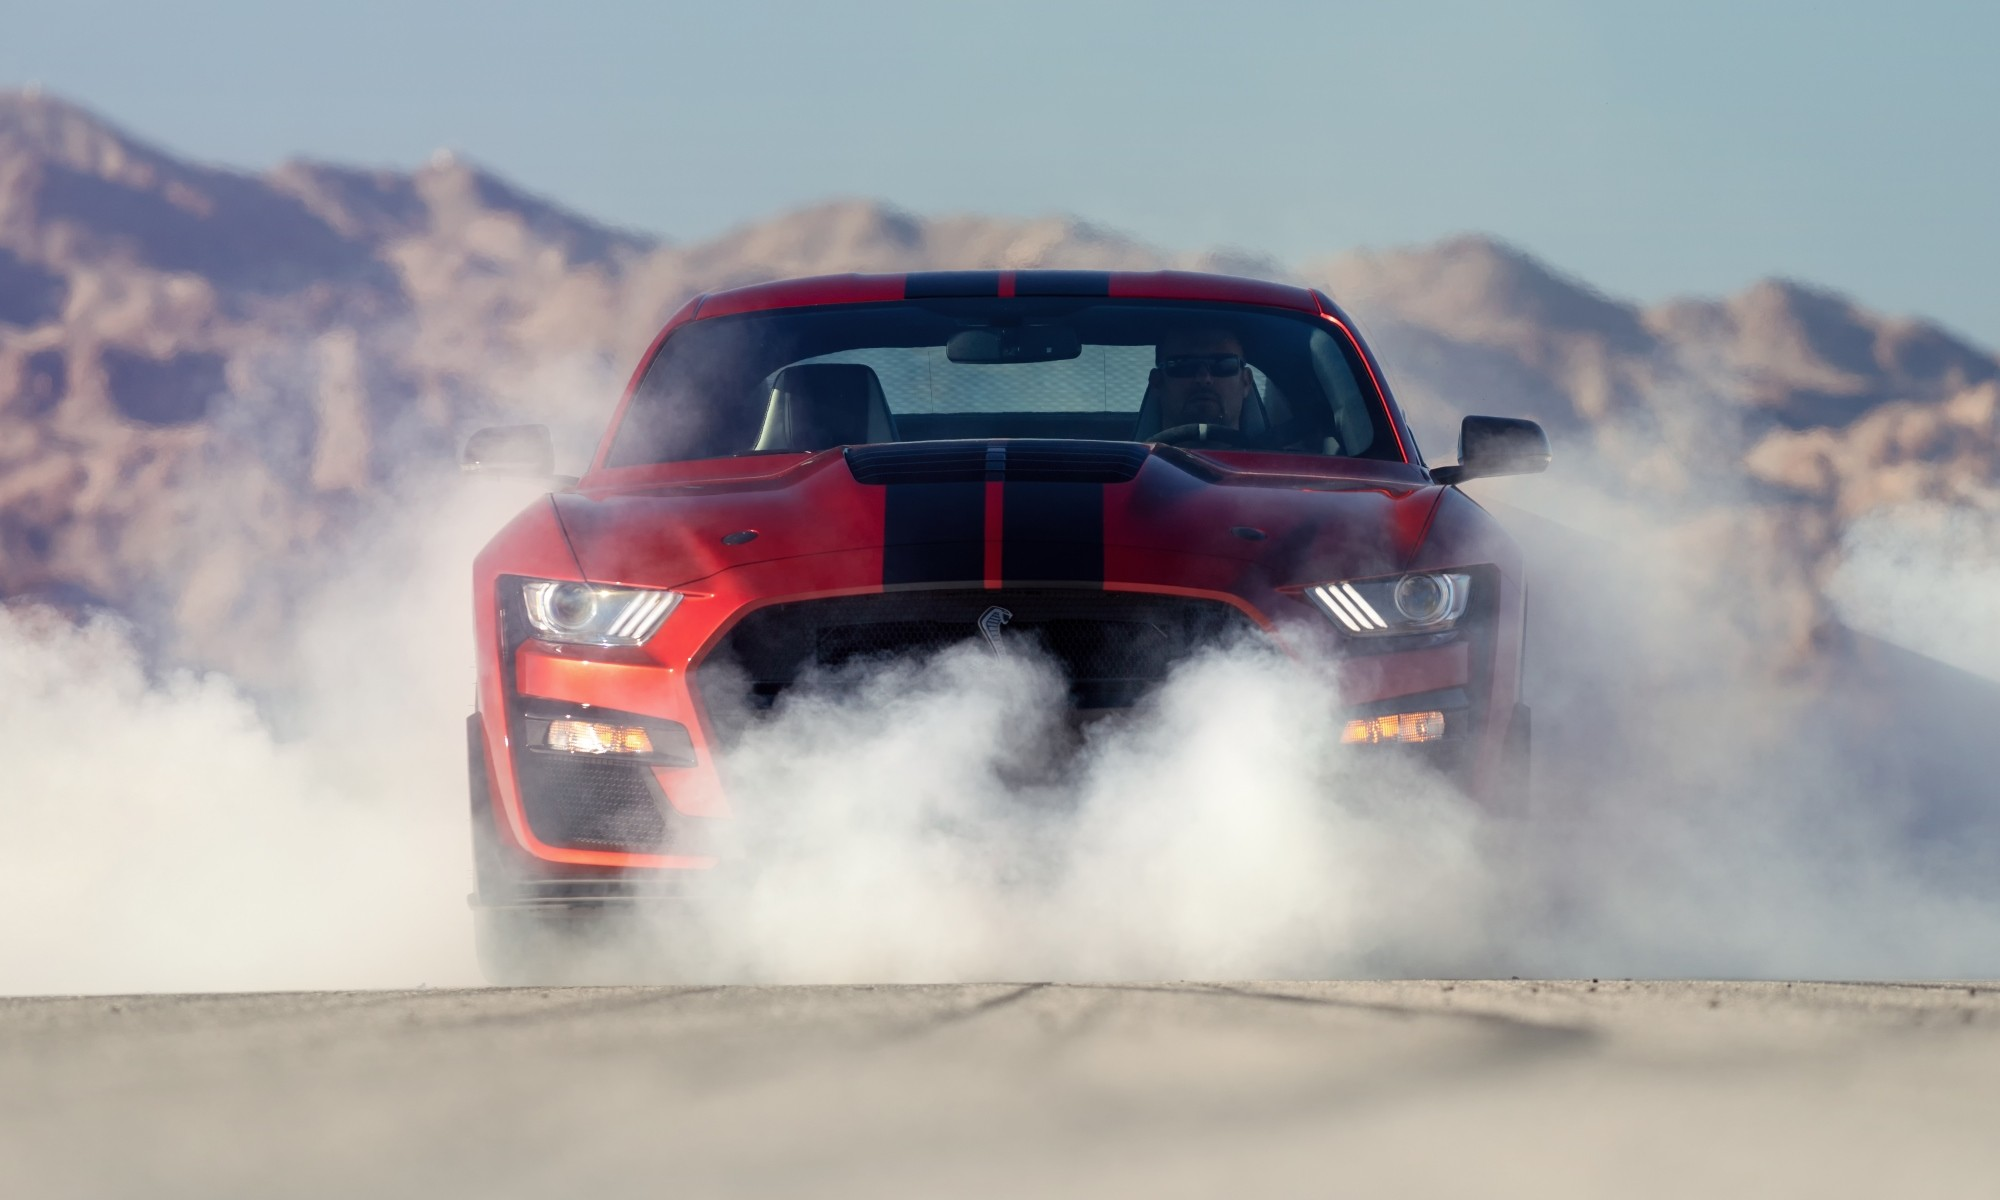 Mustang Shelby GT500 burnout